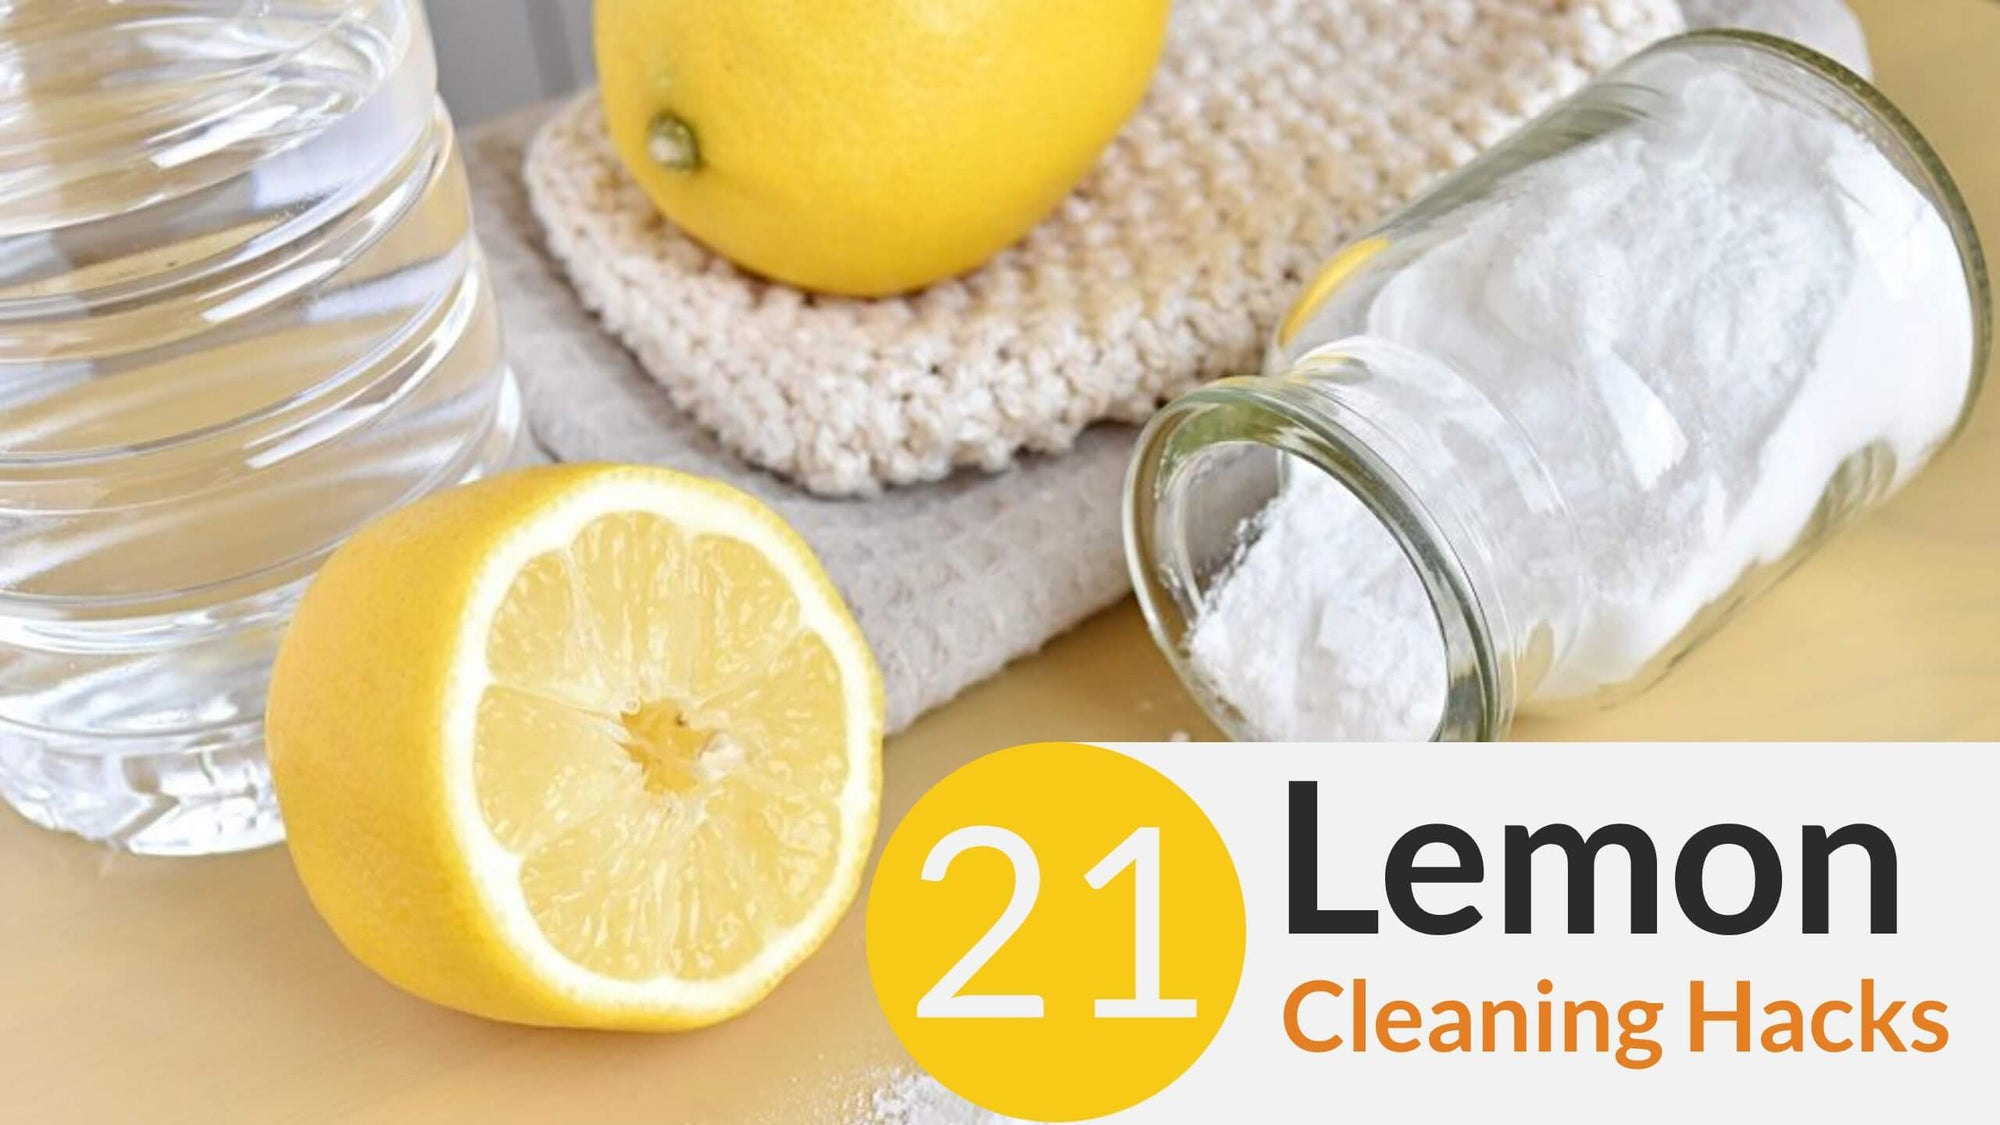 21 Lemon Cleaning Hacks (#15 is Amazing)